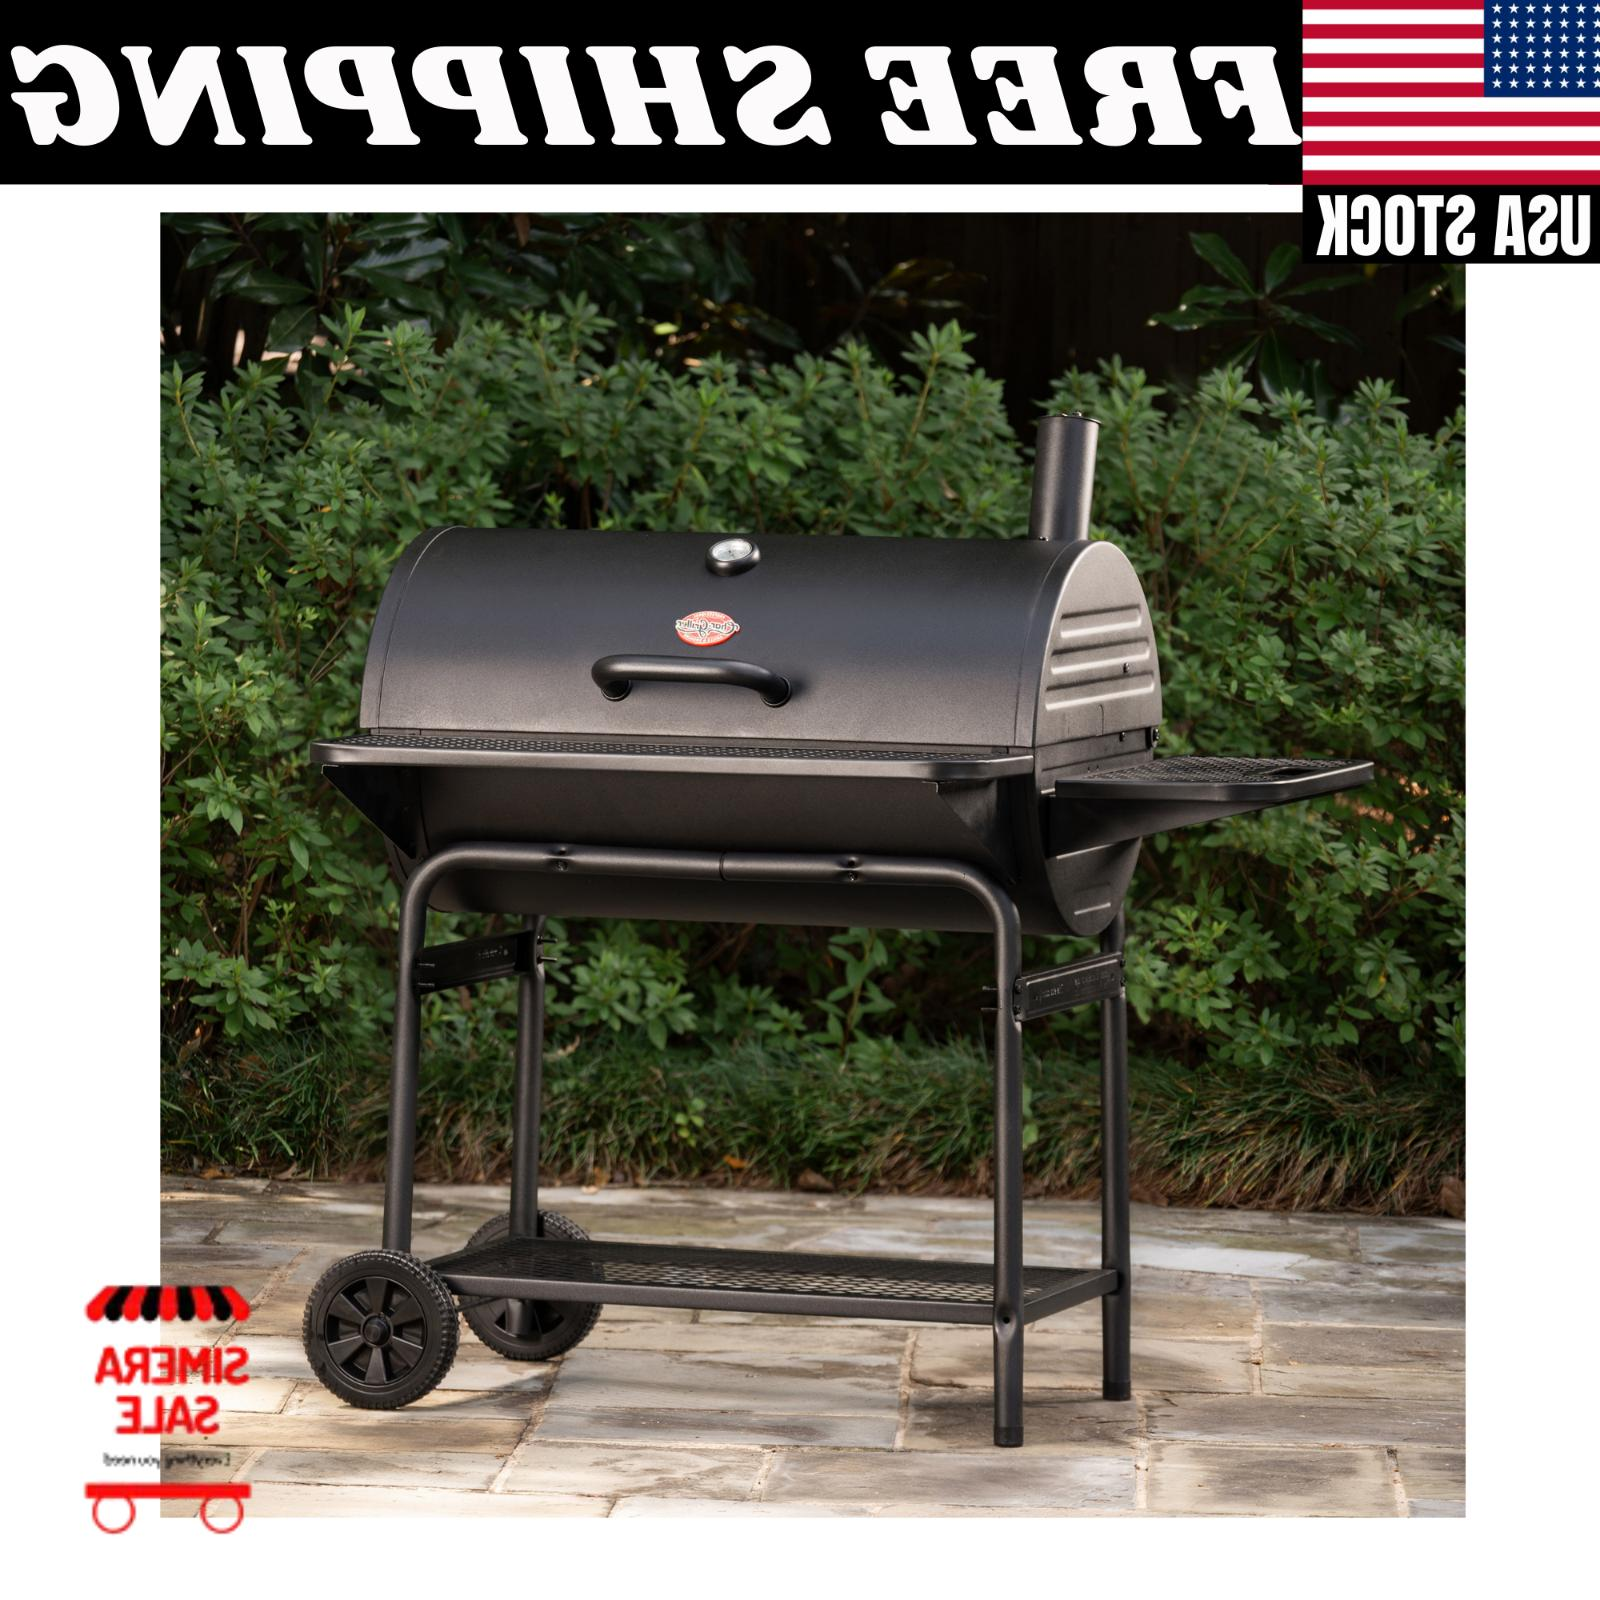 Large Outdoor BBQ Grills Professional